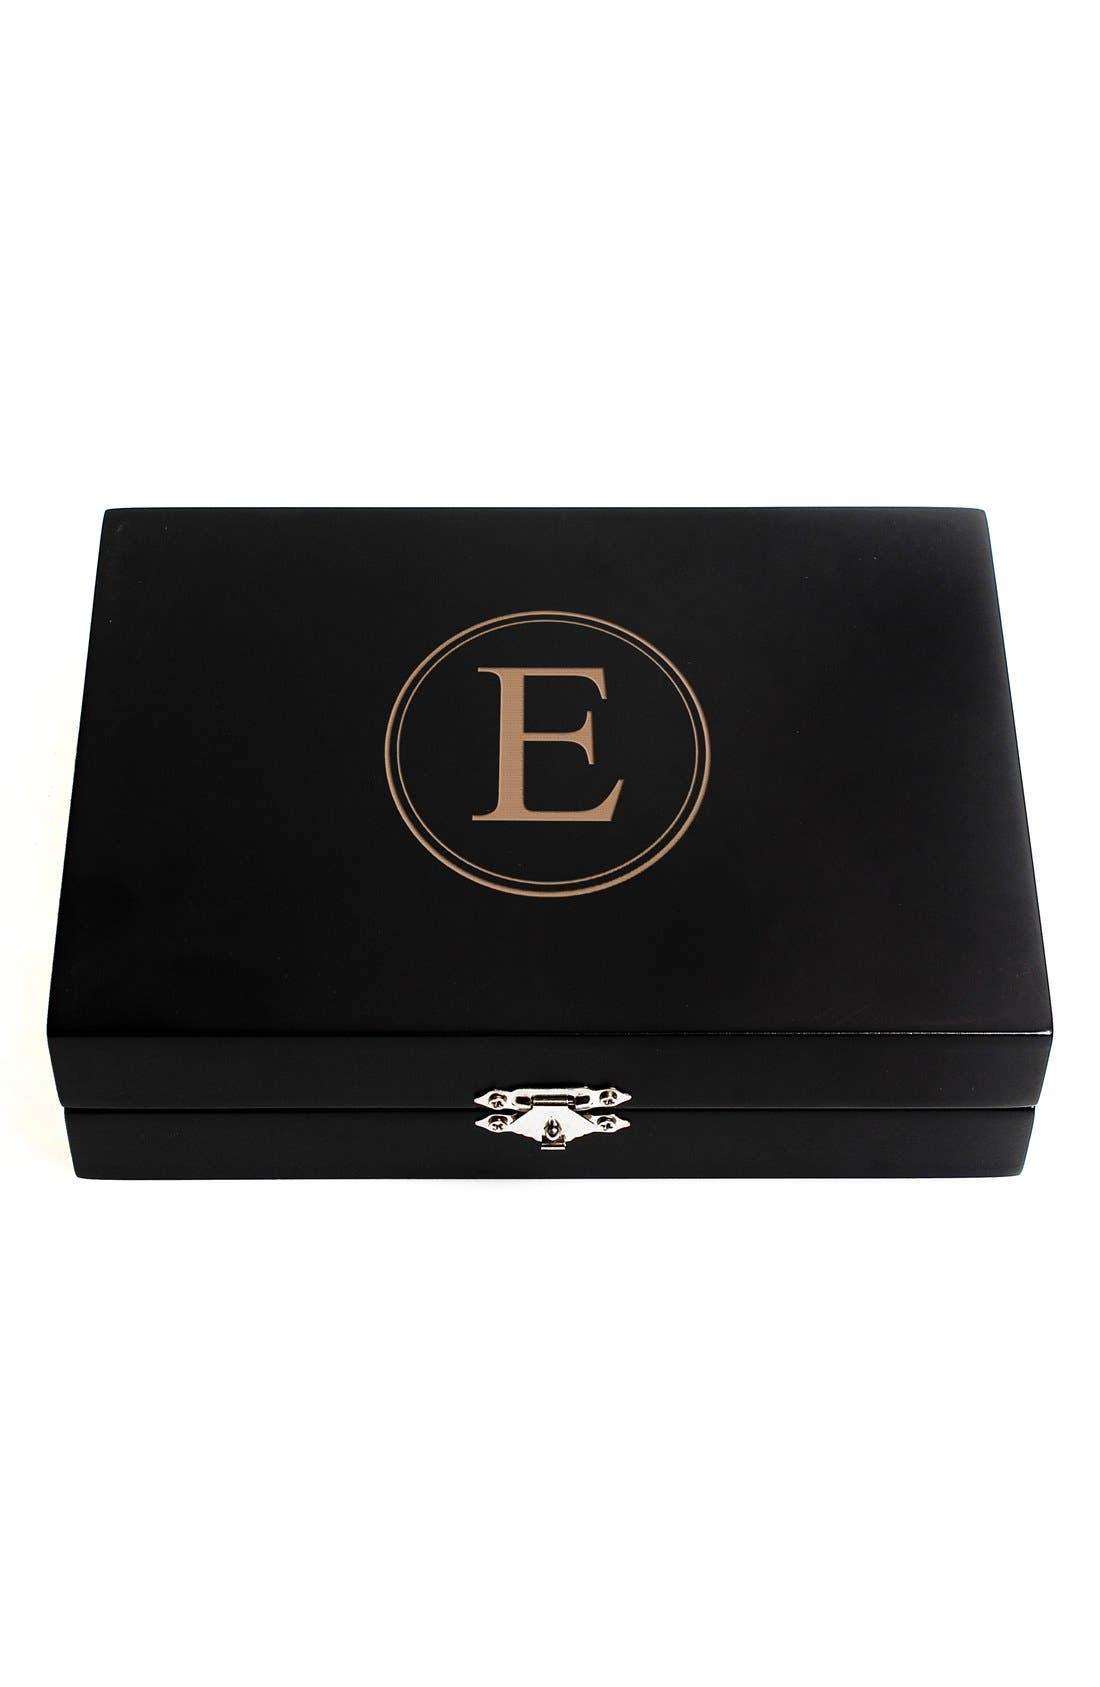 Monogram Wooden Jewelry Box,                             Main thumbnail 7, color,